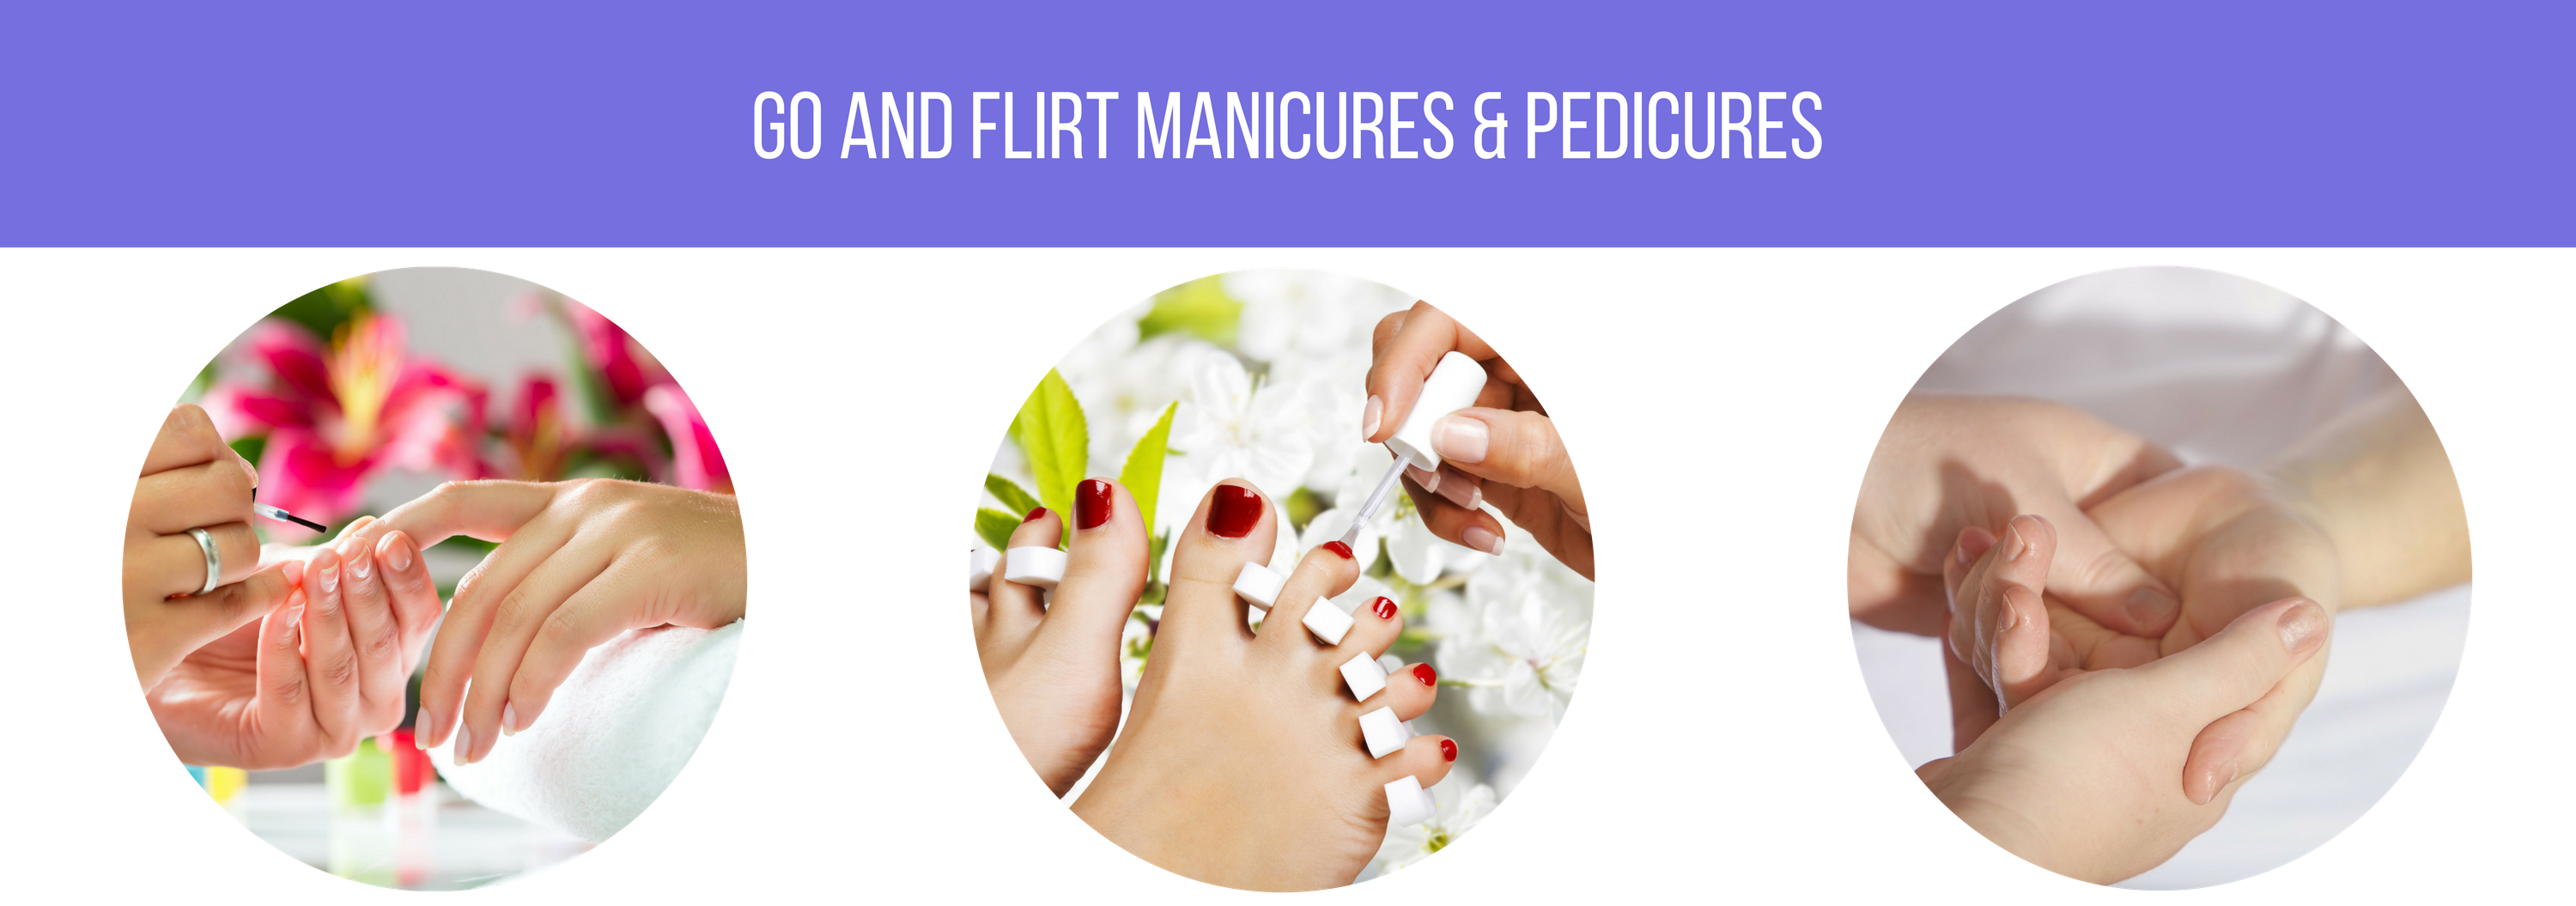 Manicures pedicures go flirt spa nail salon pamper yourself with a relaxing manicure and pedicure with additional treatment options like collagen gloves for hydration solutioingenieria Choice Image